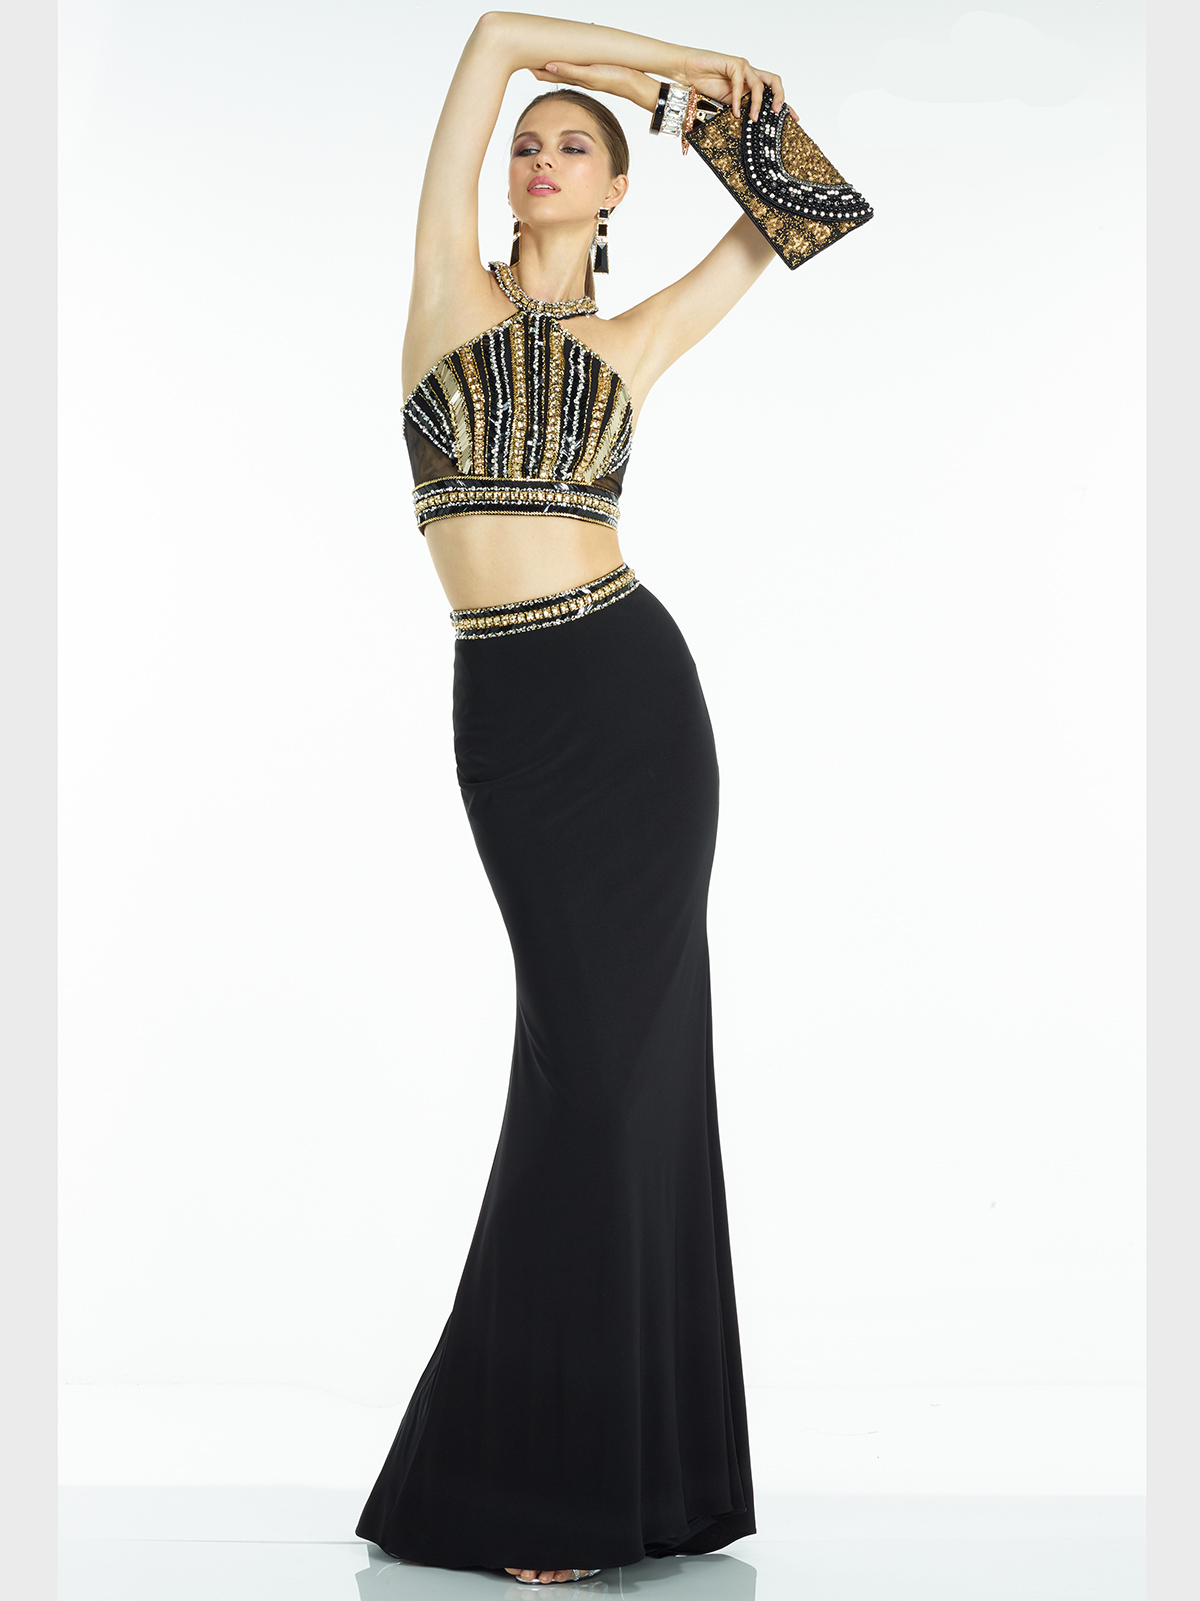 Egyptian Themed Prom Dresses